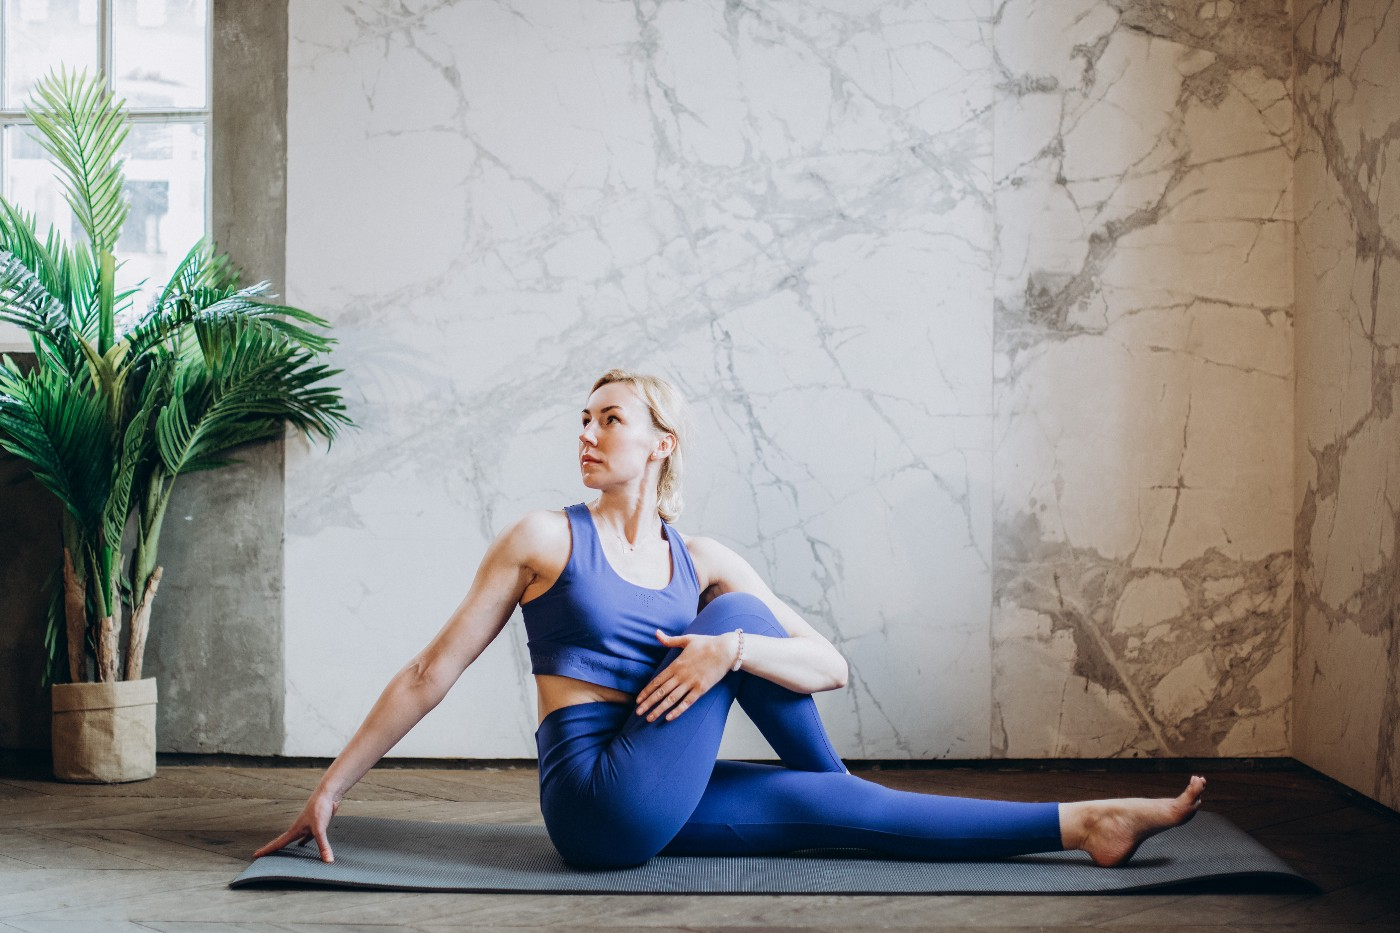 Woman in blue outfit doing yoga on a mat